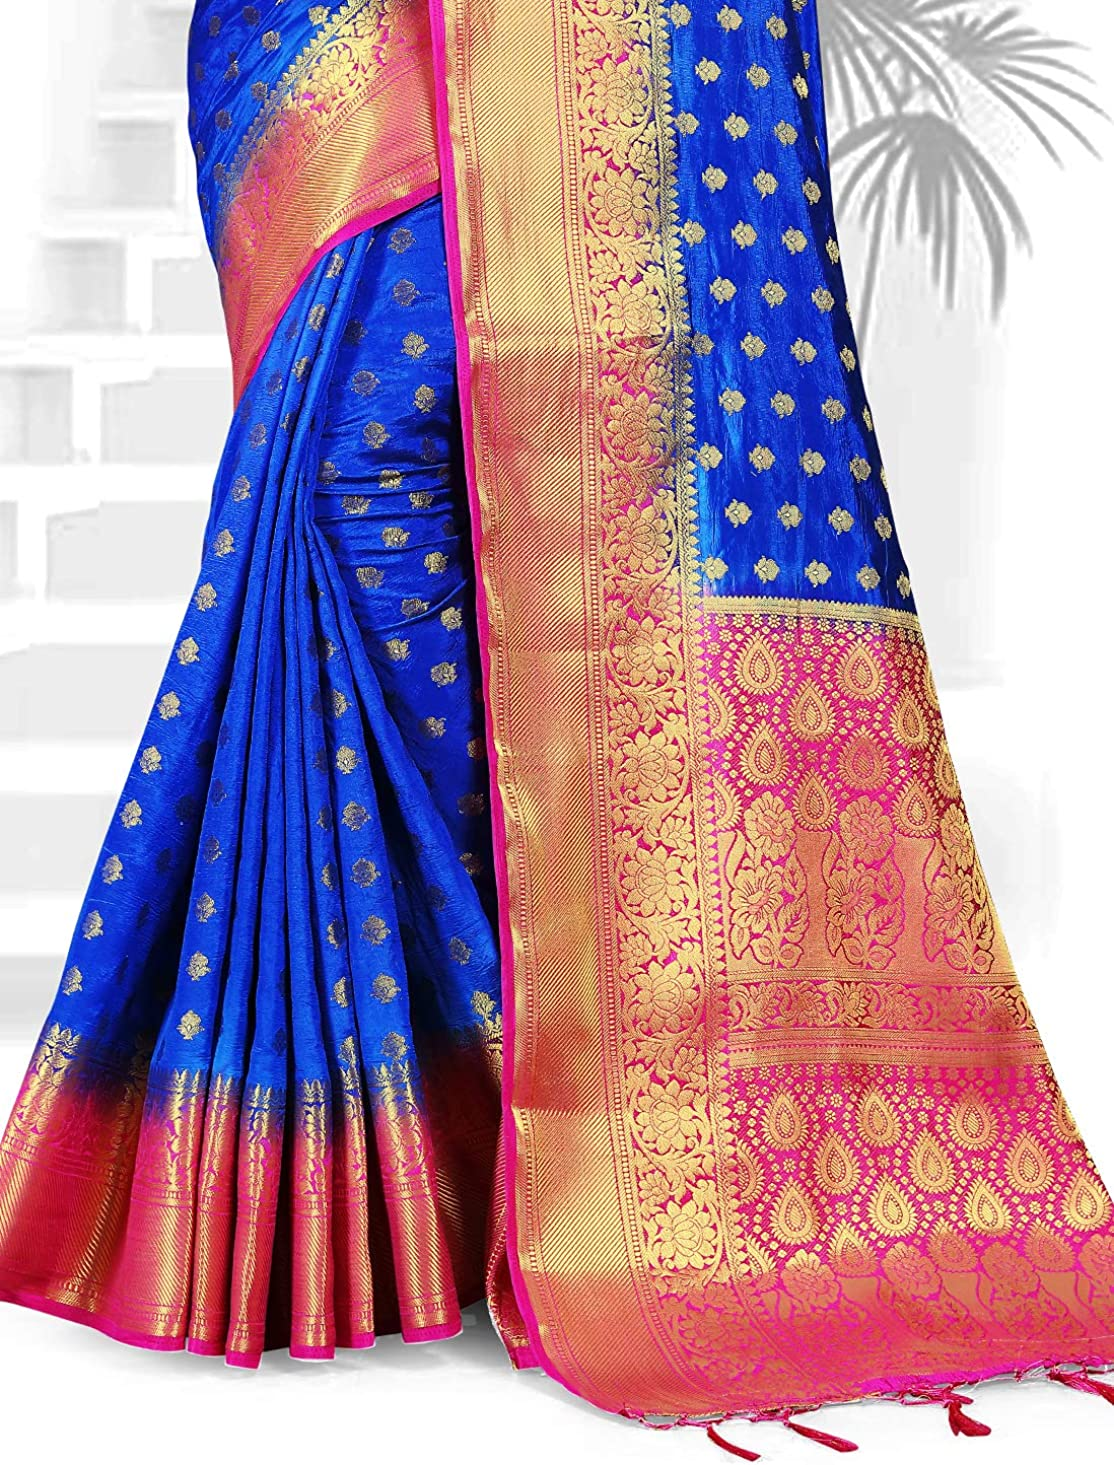 Elina fashion Sarees for Women Banarasi Art Silk Woven Saree l Indian Wedding Gift Sari with Unstitched Blouse